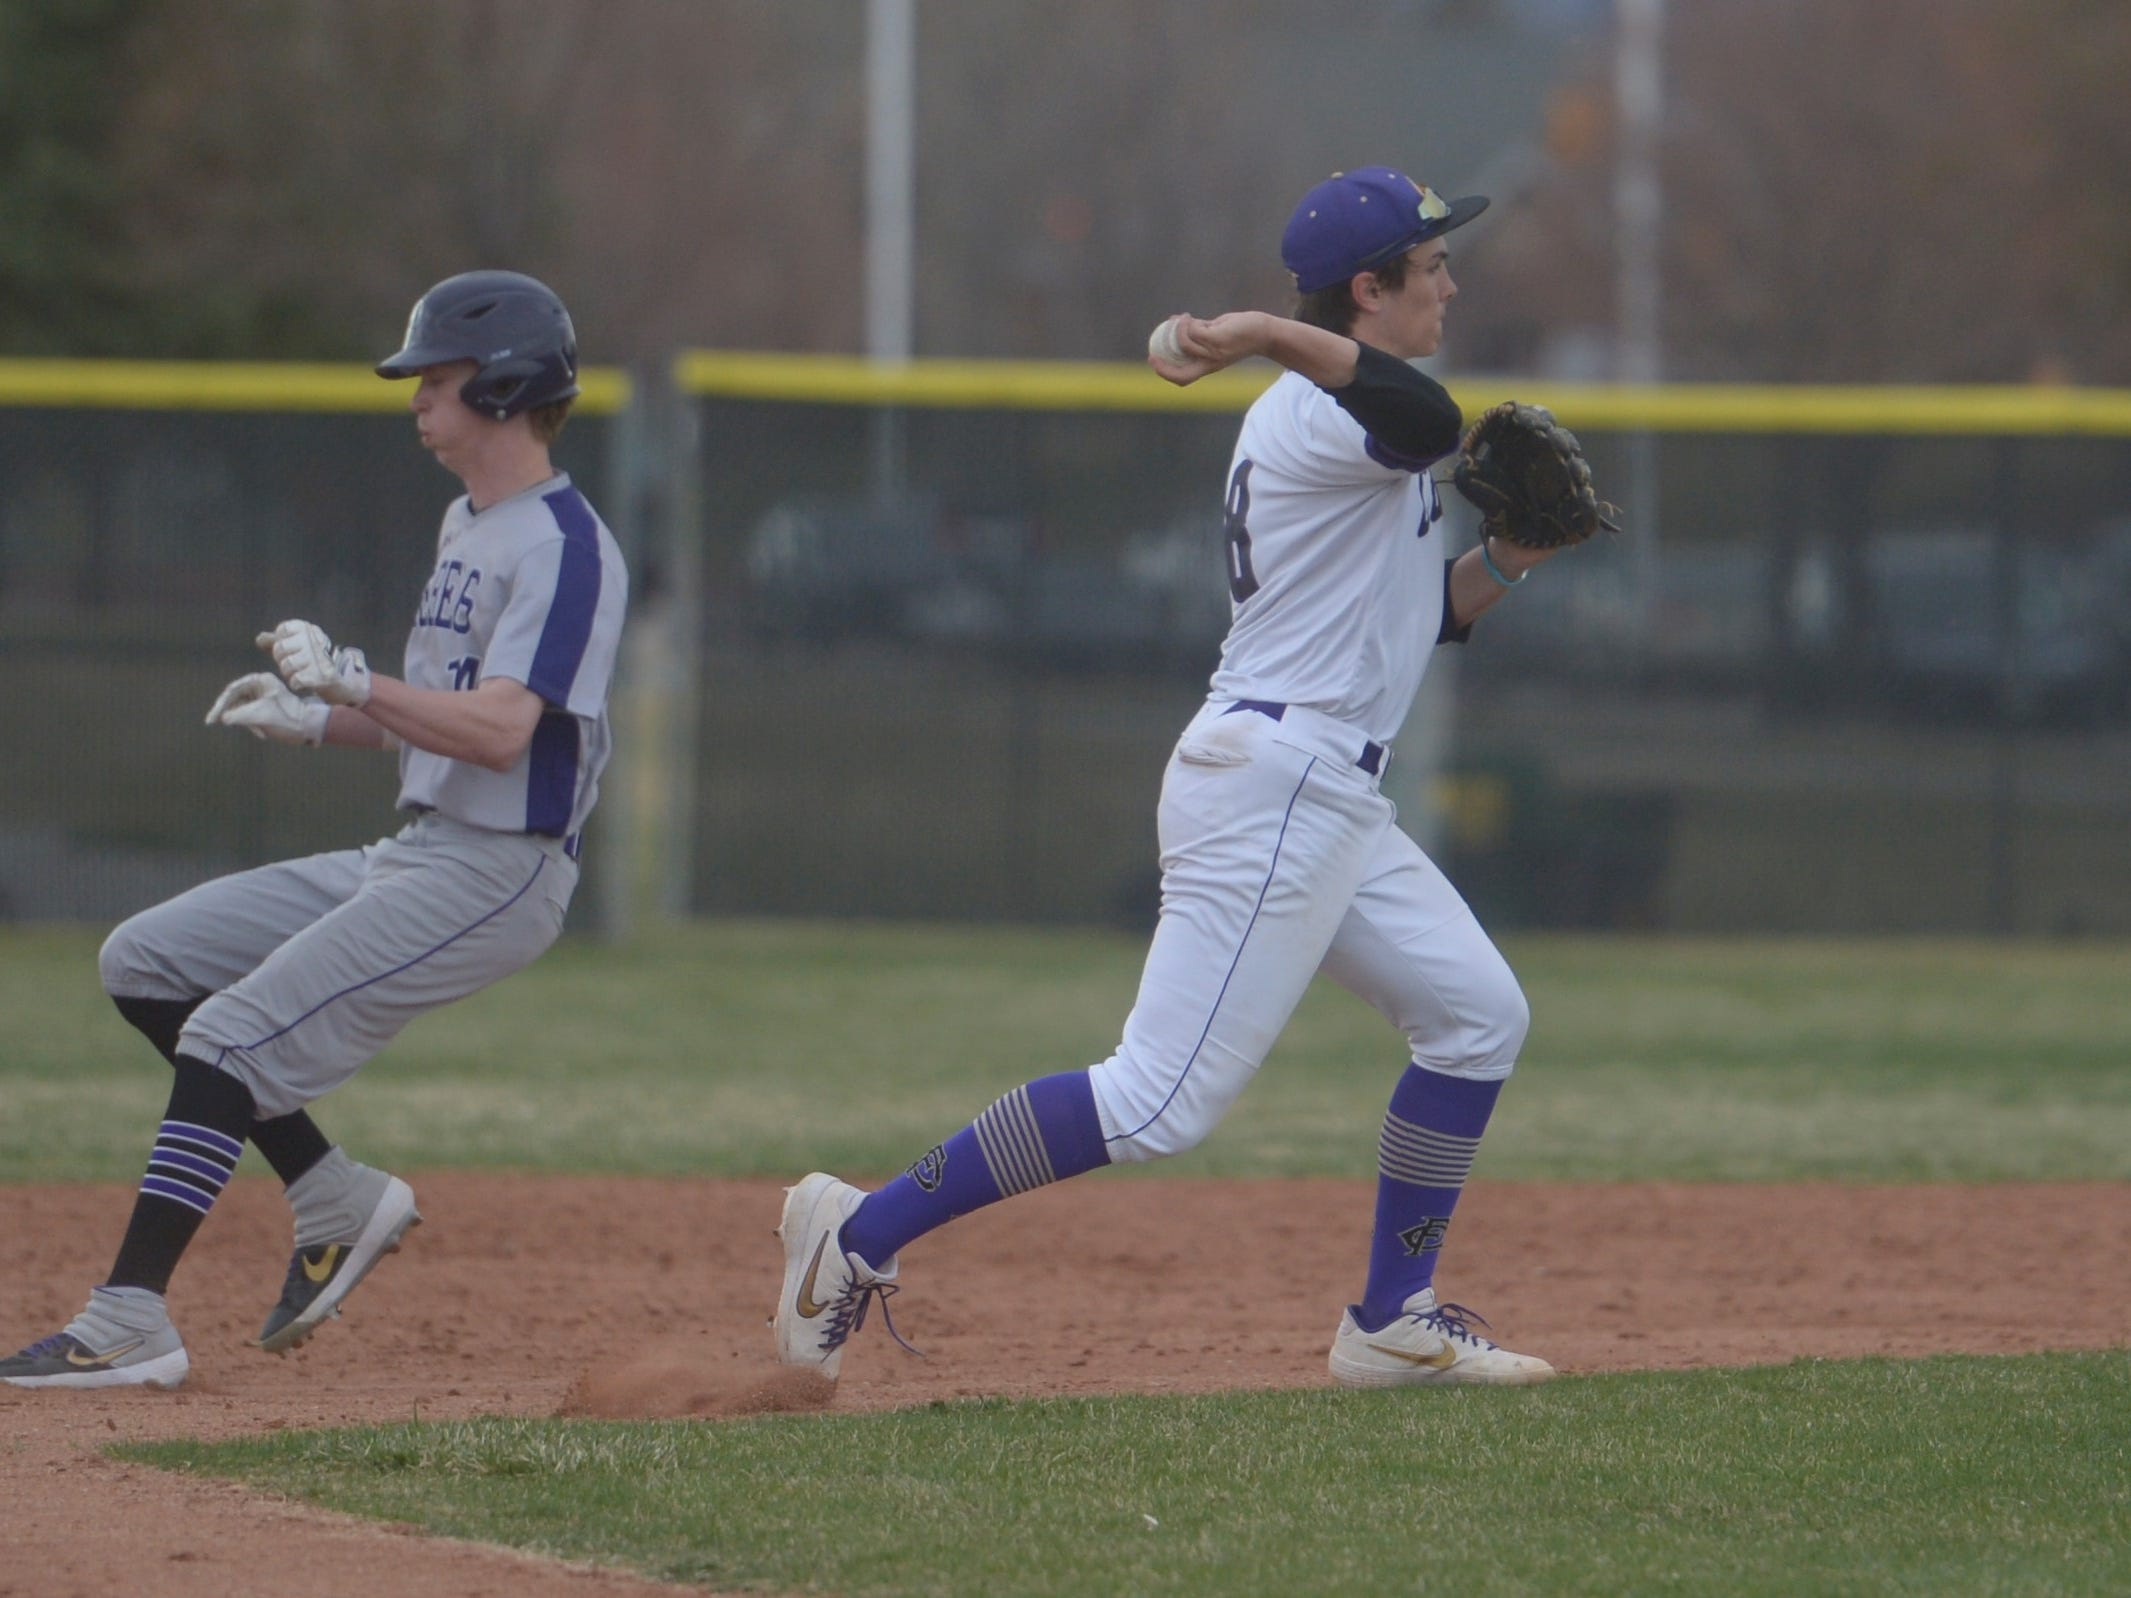 Fort Collins High School shortstop Blake Templeton throws to first during a game against Denver South on Monday, April 8, 2019. The Lambkins won 13-3 to move to 10-0 on the season.